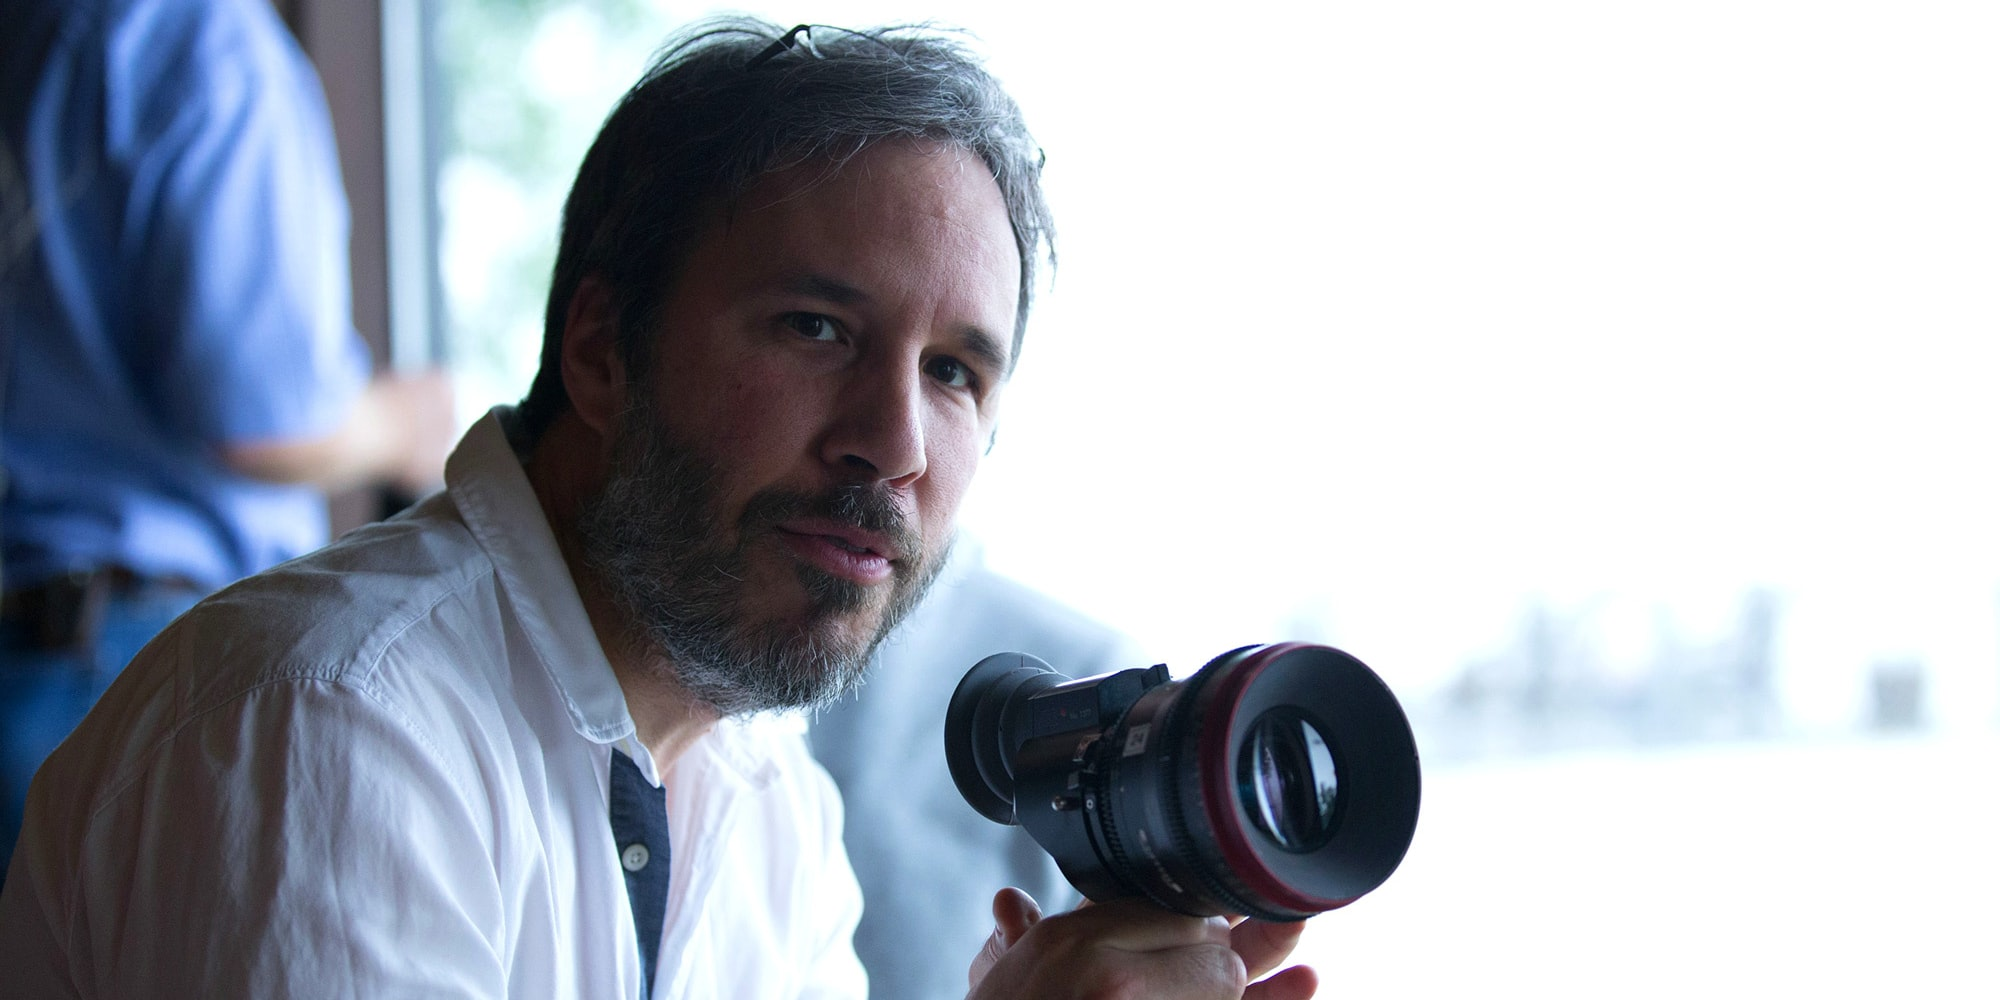 denis villeneuve filmsdenis villeneuve dune, denis villeneuve imdb, denis villeneuve twitter, denis villeneuve instagram, denis villeneuve enemy, denis villeneuve wiki, denis villeneuve net worth, denis villeneuve films, denis villeneuve arrival interview, denis villeneuve (arrival), denis villeneuve top, denis villeneuve worst to best, denis villeneuve metacritic, denis villeneuve dune jodorowsky, denis villeneuve cinematography, denis villeneuve tribute, denis villeneuve reddit, denis villeneuve linkedin, denis villeneuve email, denis villeneuve dating